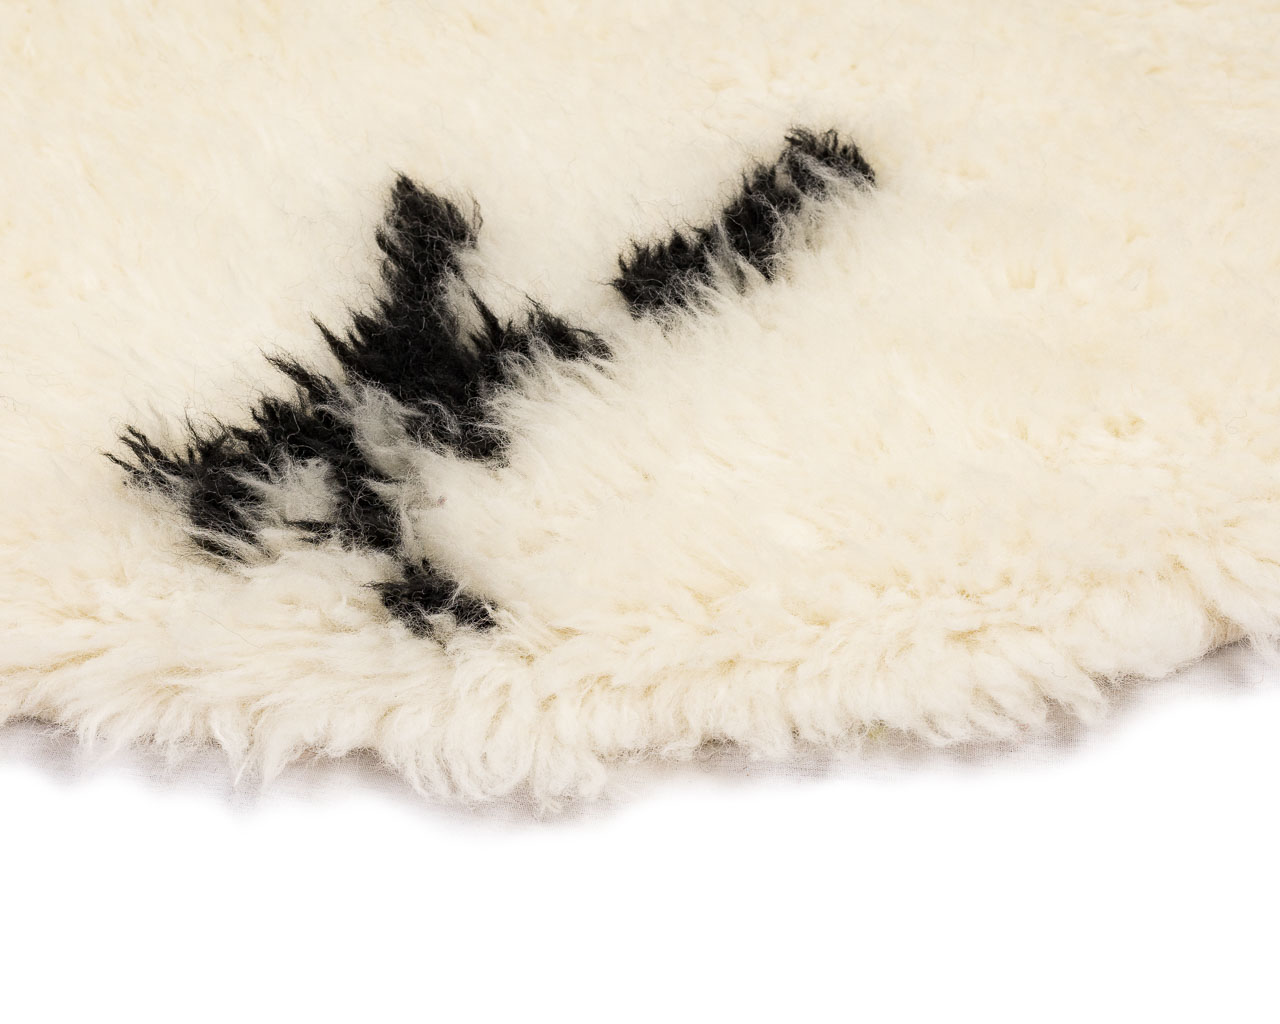 feathery-rug-in-round-with-black-symbols